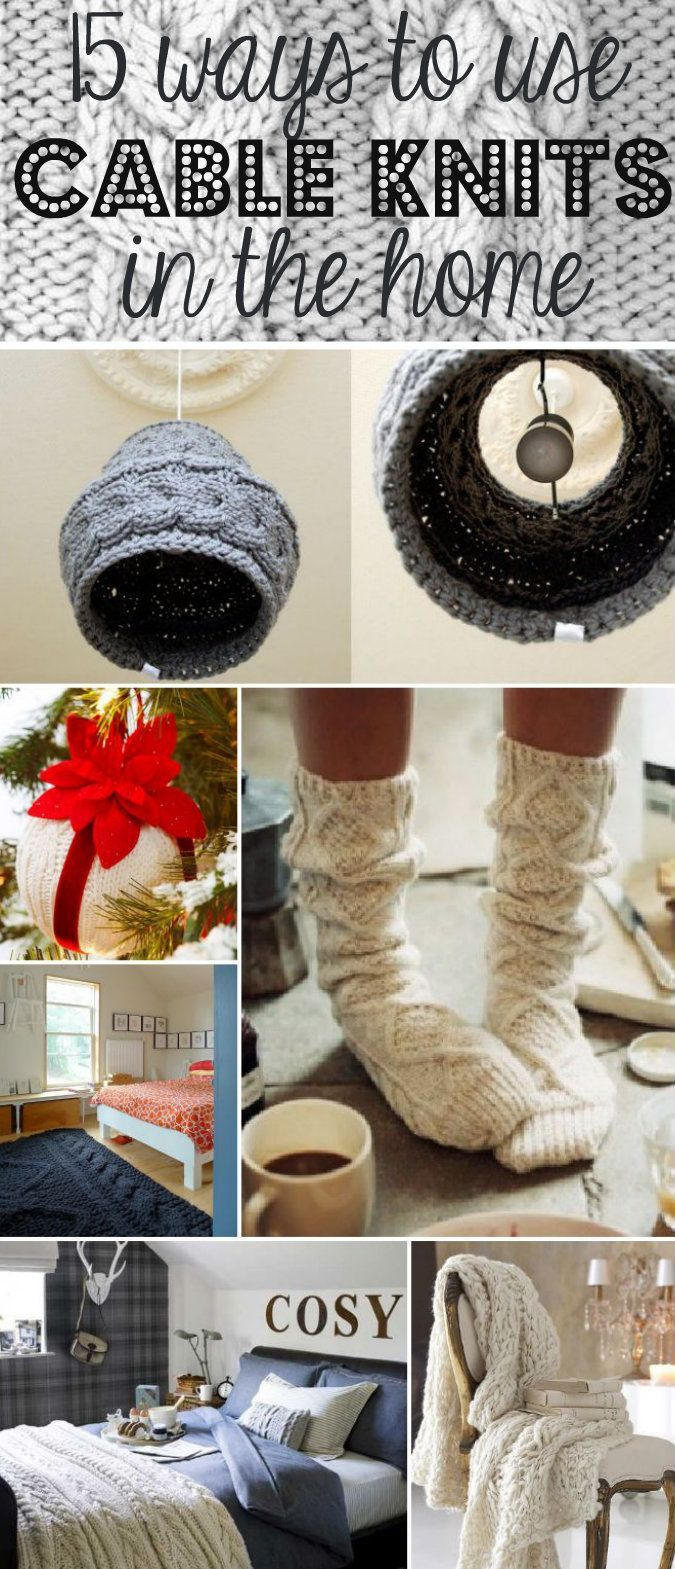 Ways to decorate with cable knits.